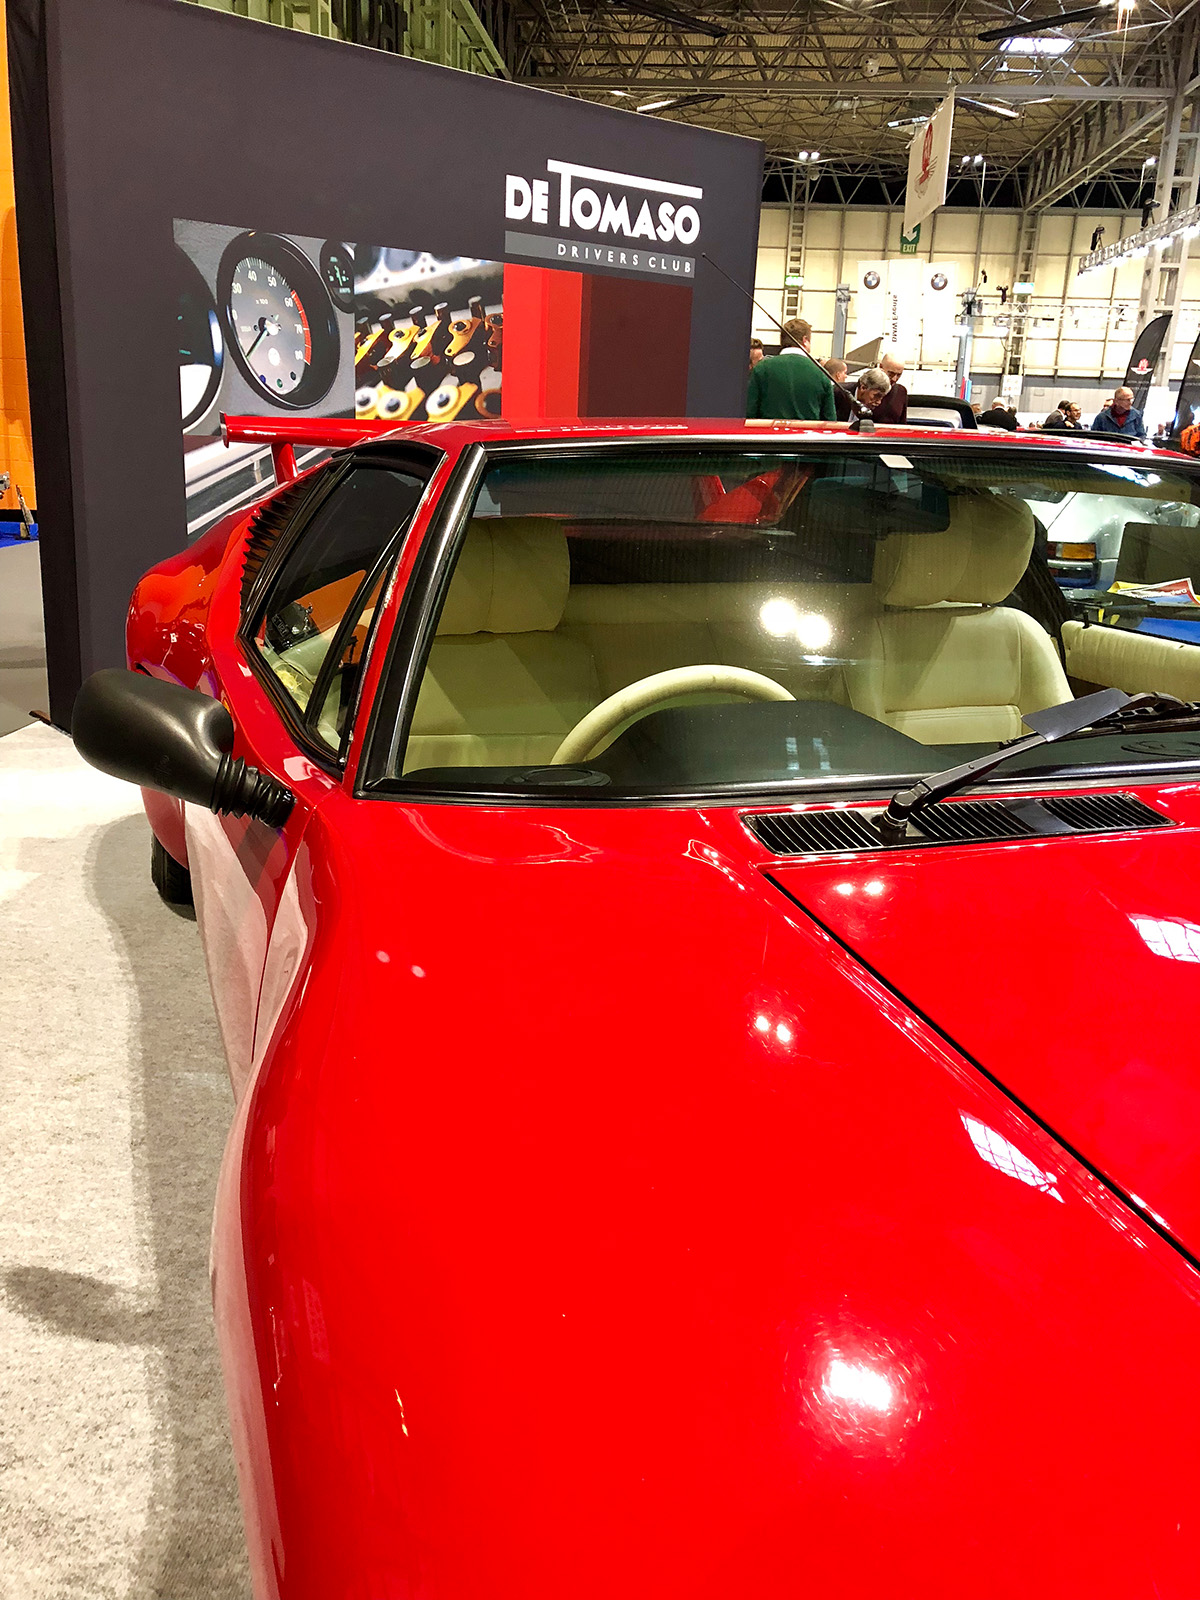 The De Tomaso UK Drivers Club showcases at the NEC Classic Motor Show November 2018